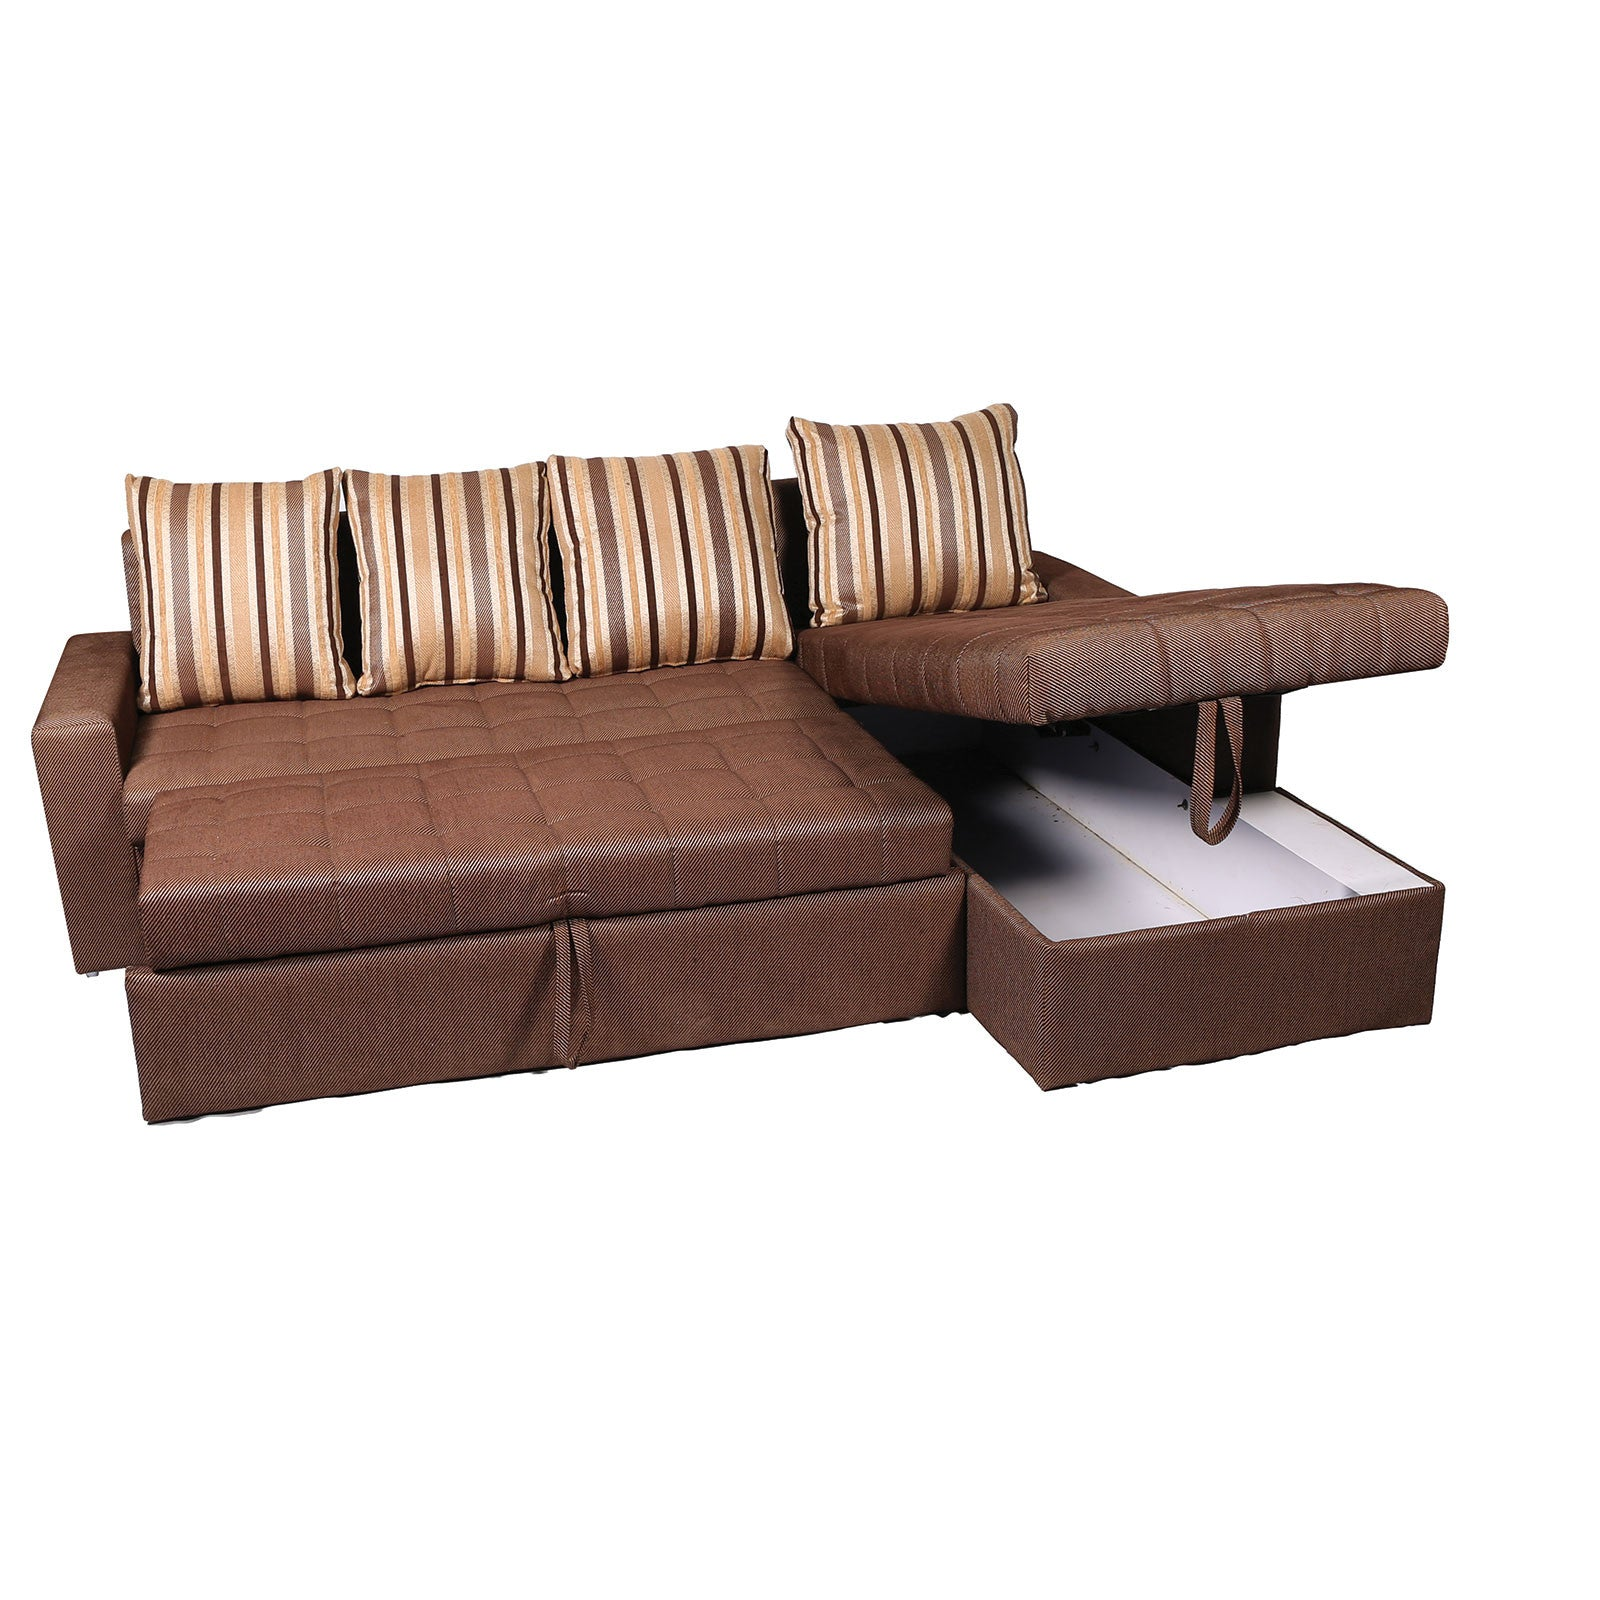 Mood of Wood Sofa cum bed with Storage L shape – Mood Wood